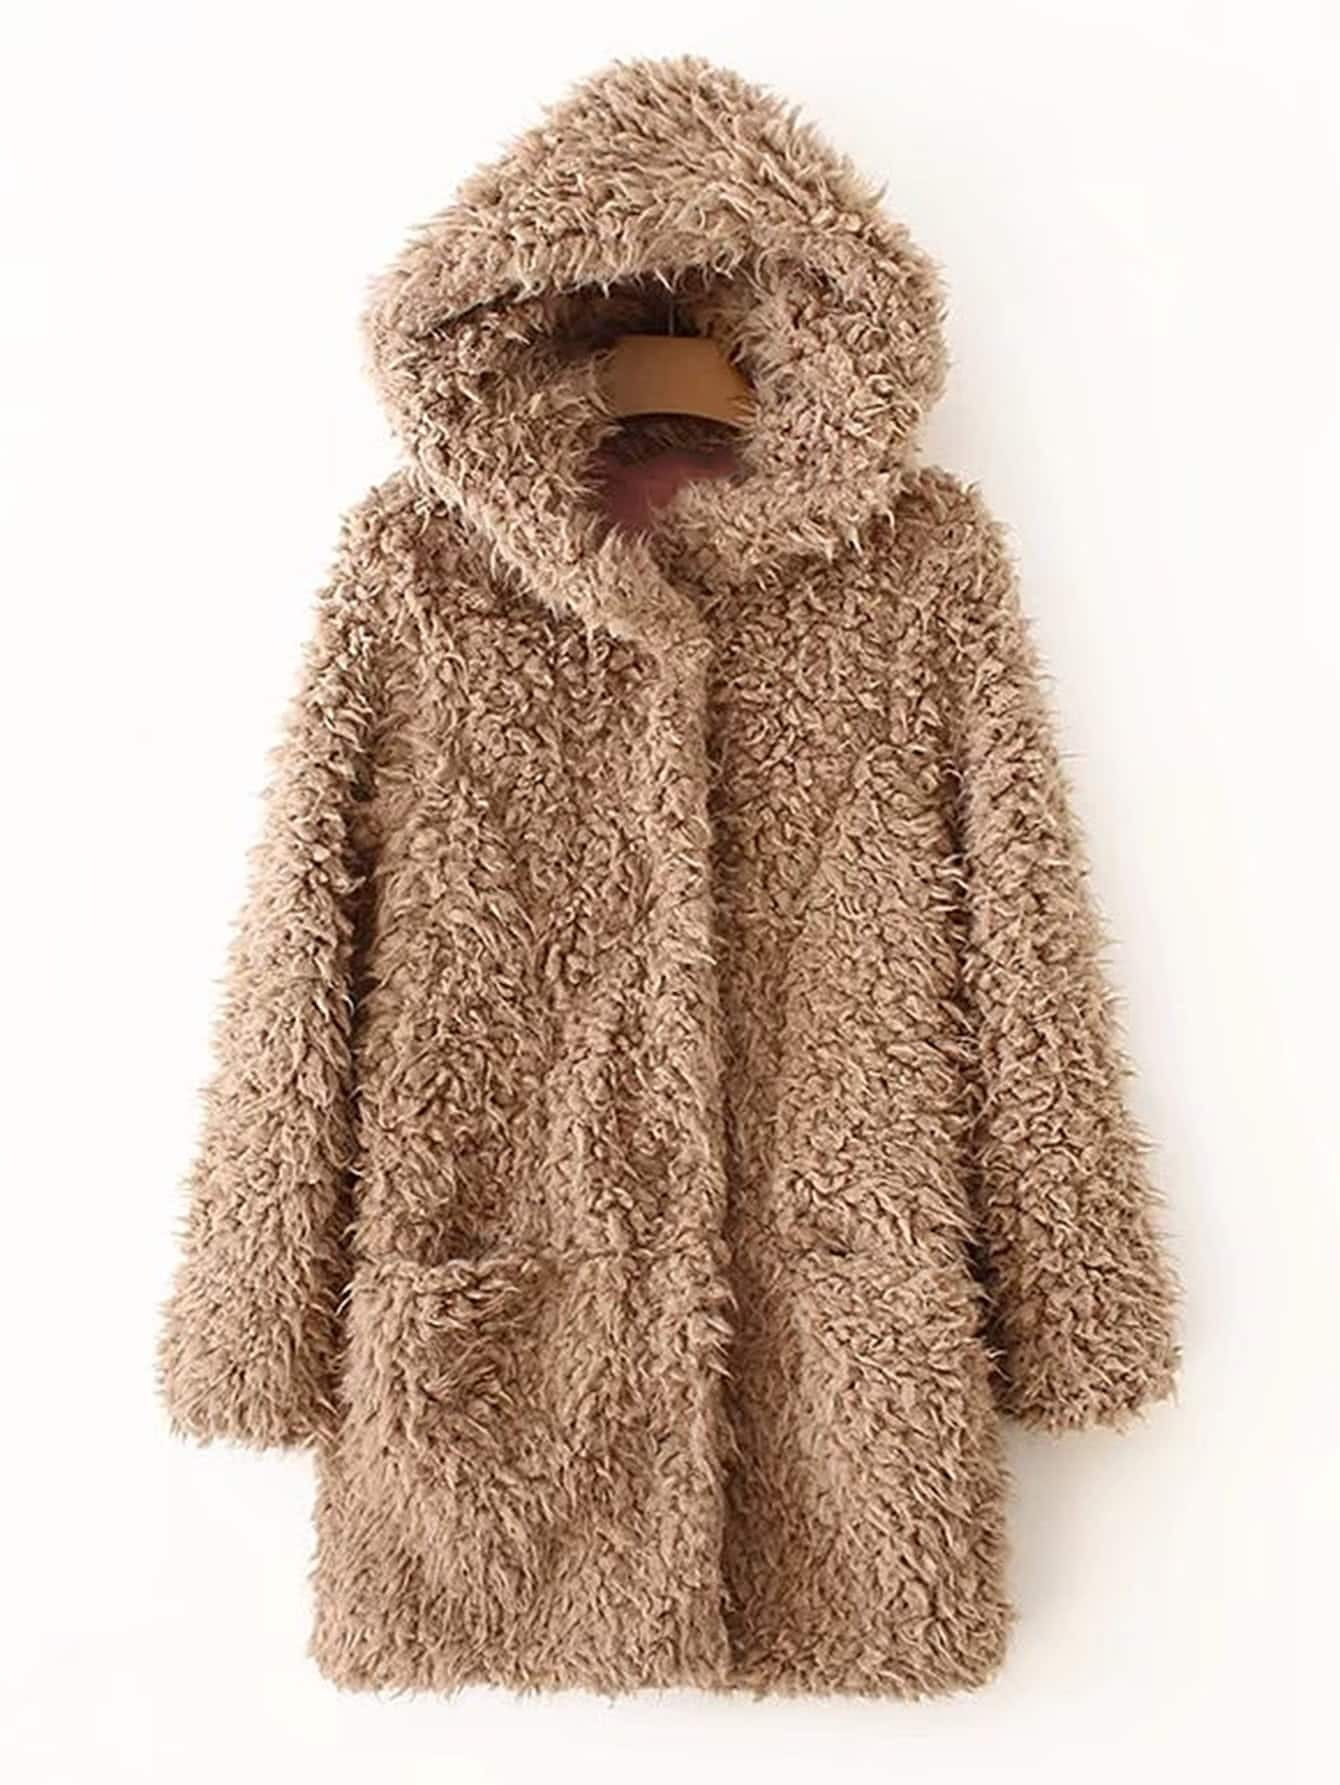 Faux Fur Hooded Coat -SheIn(Sheinside)